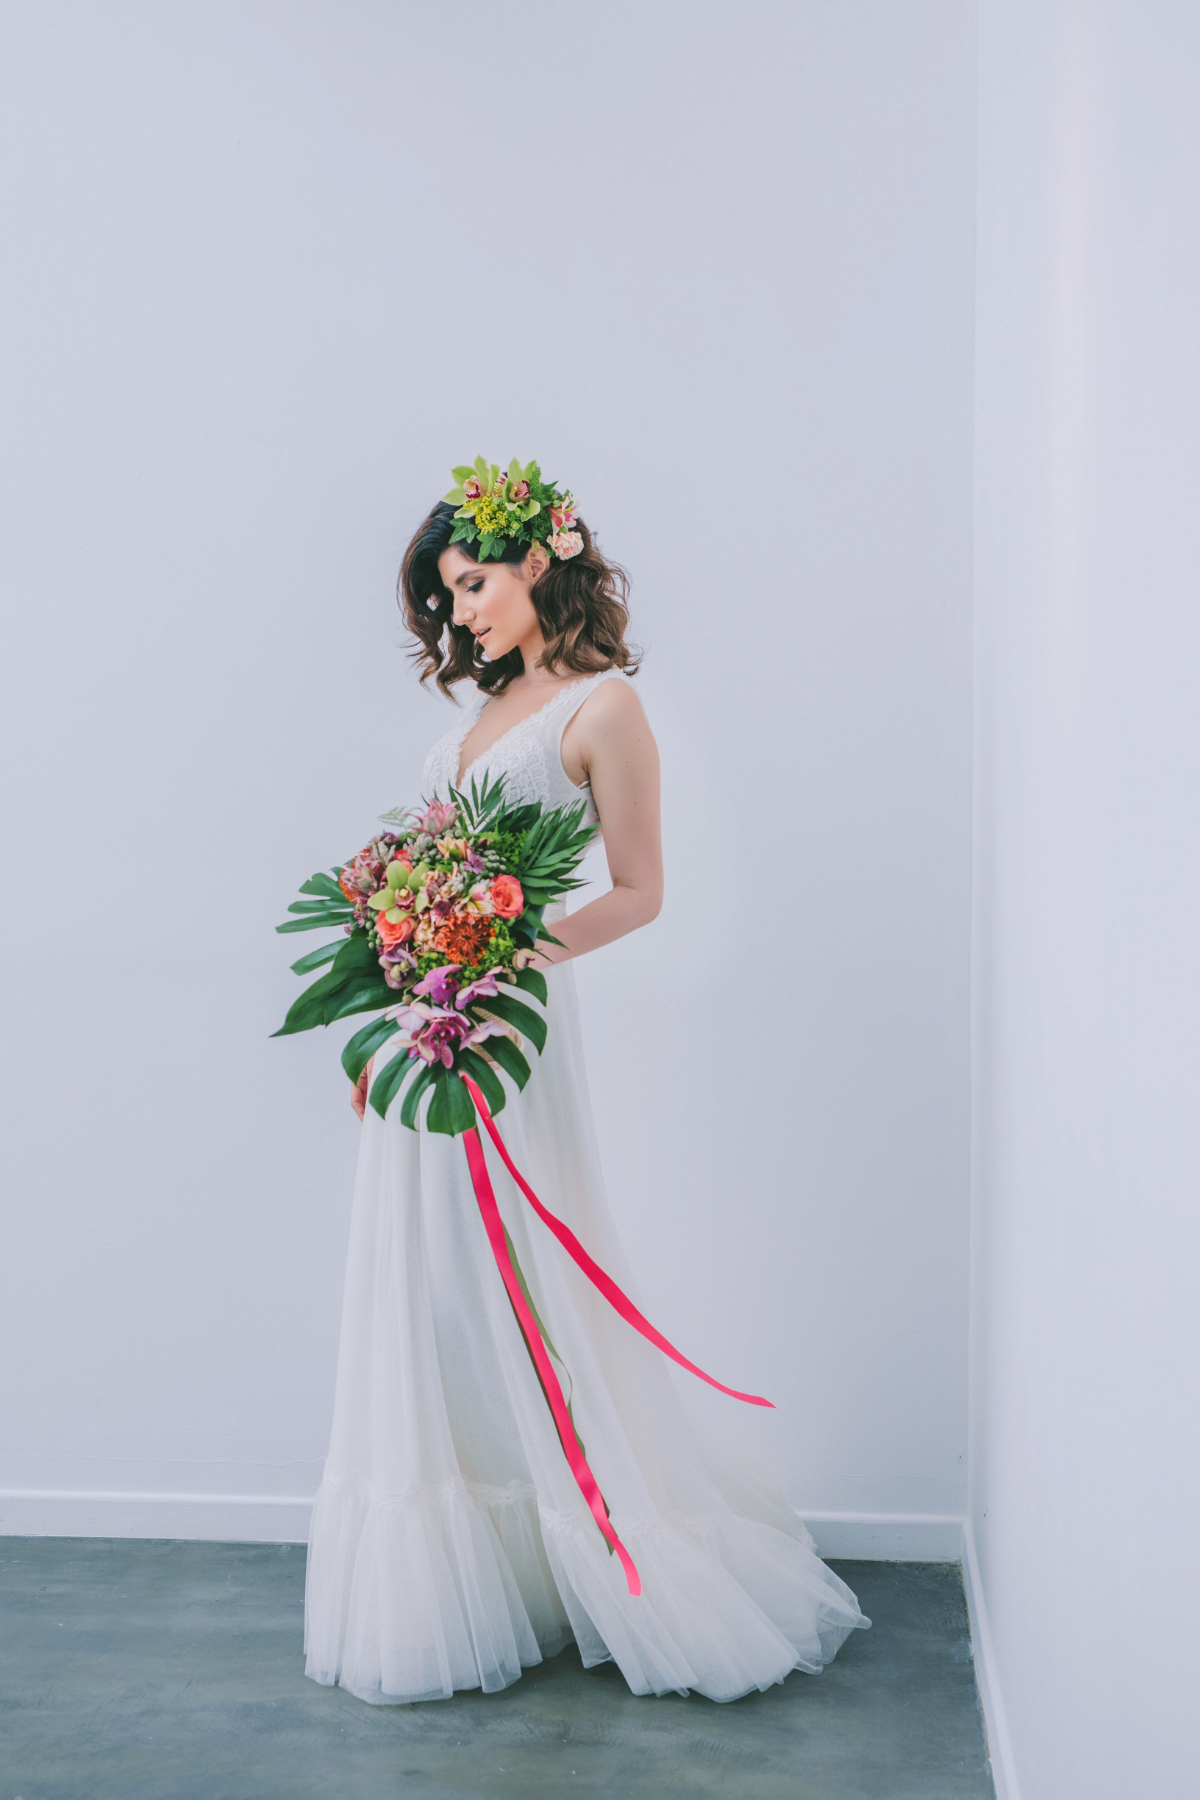 wedding stylist in greece - broderie anglaise - bride holding a modern wedding bouquet with monstera leaves